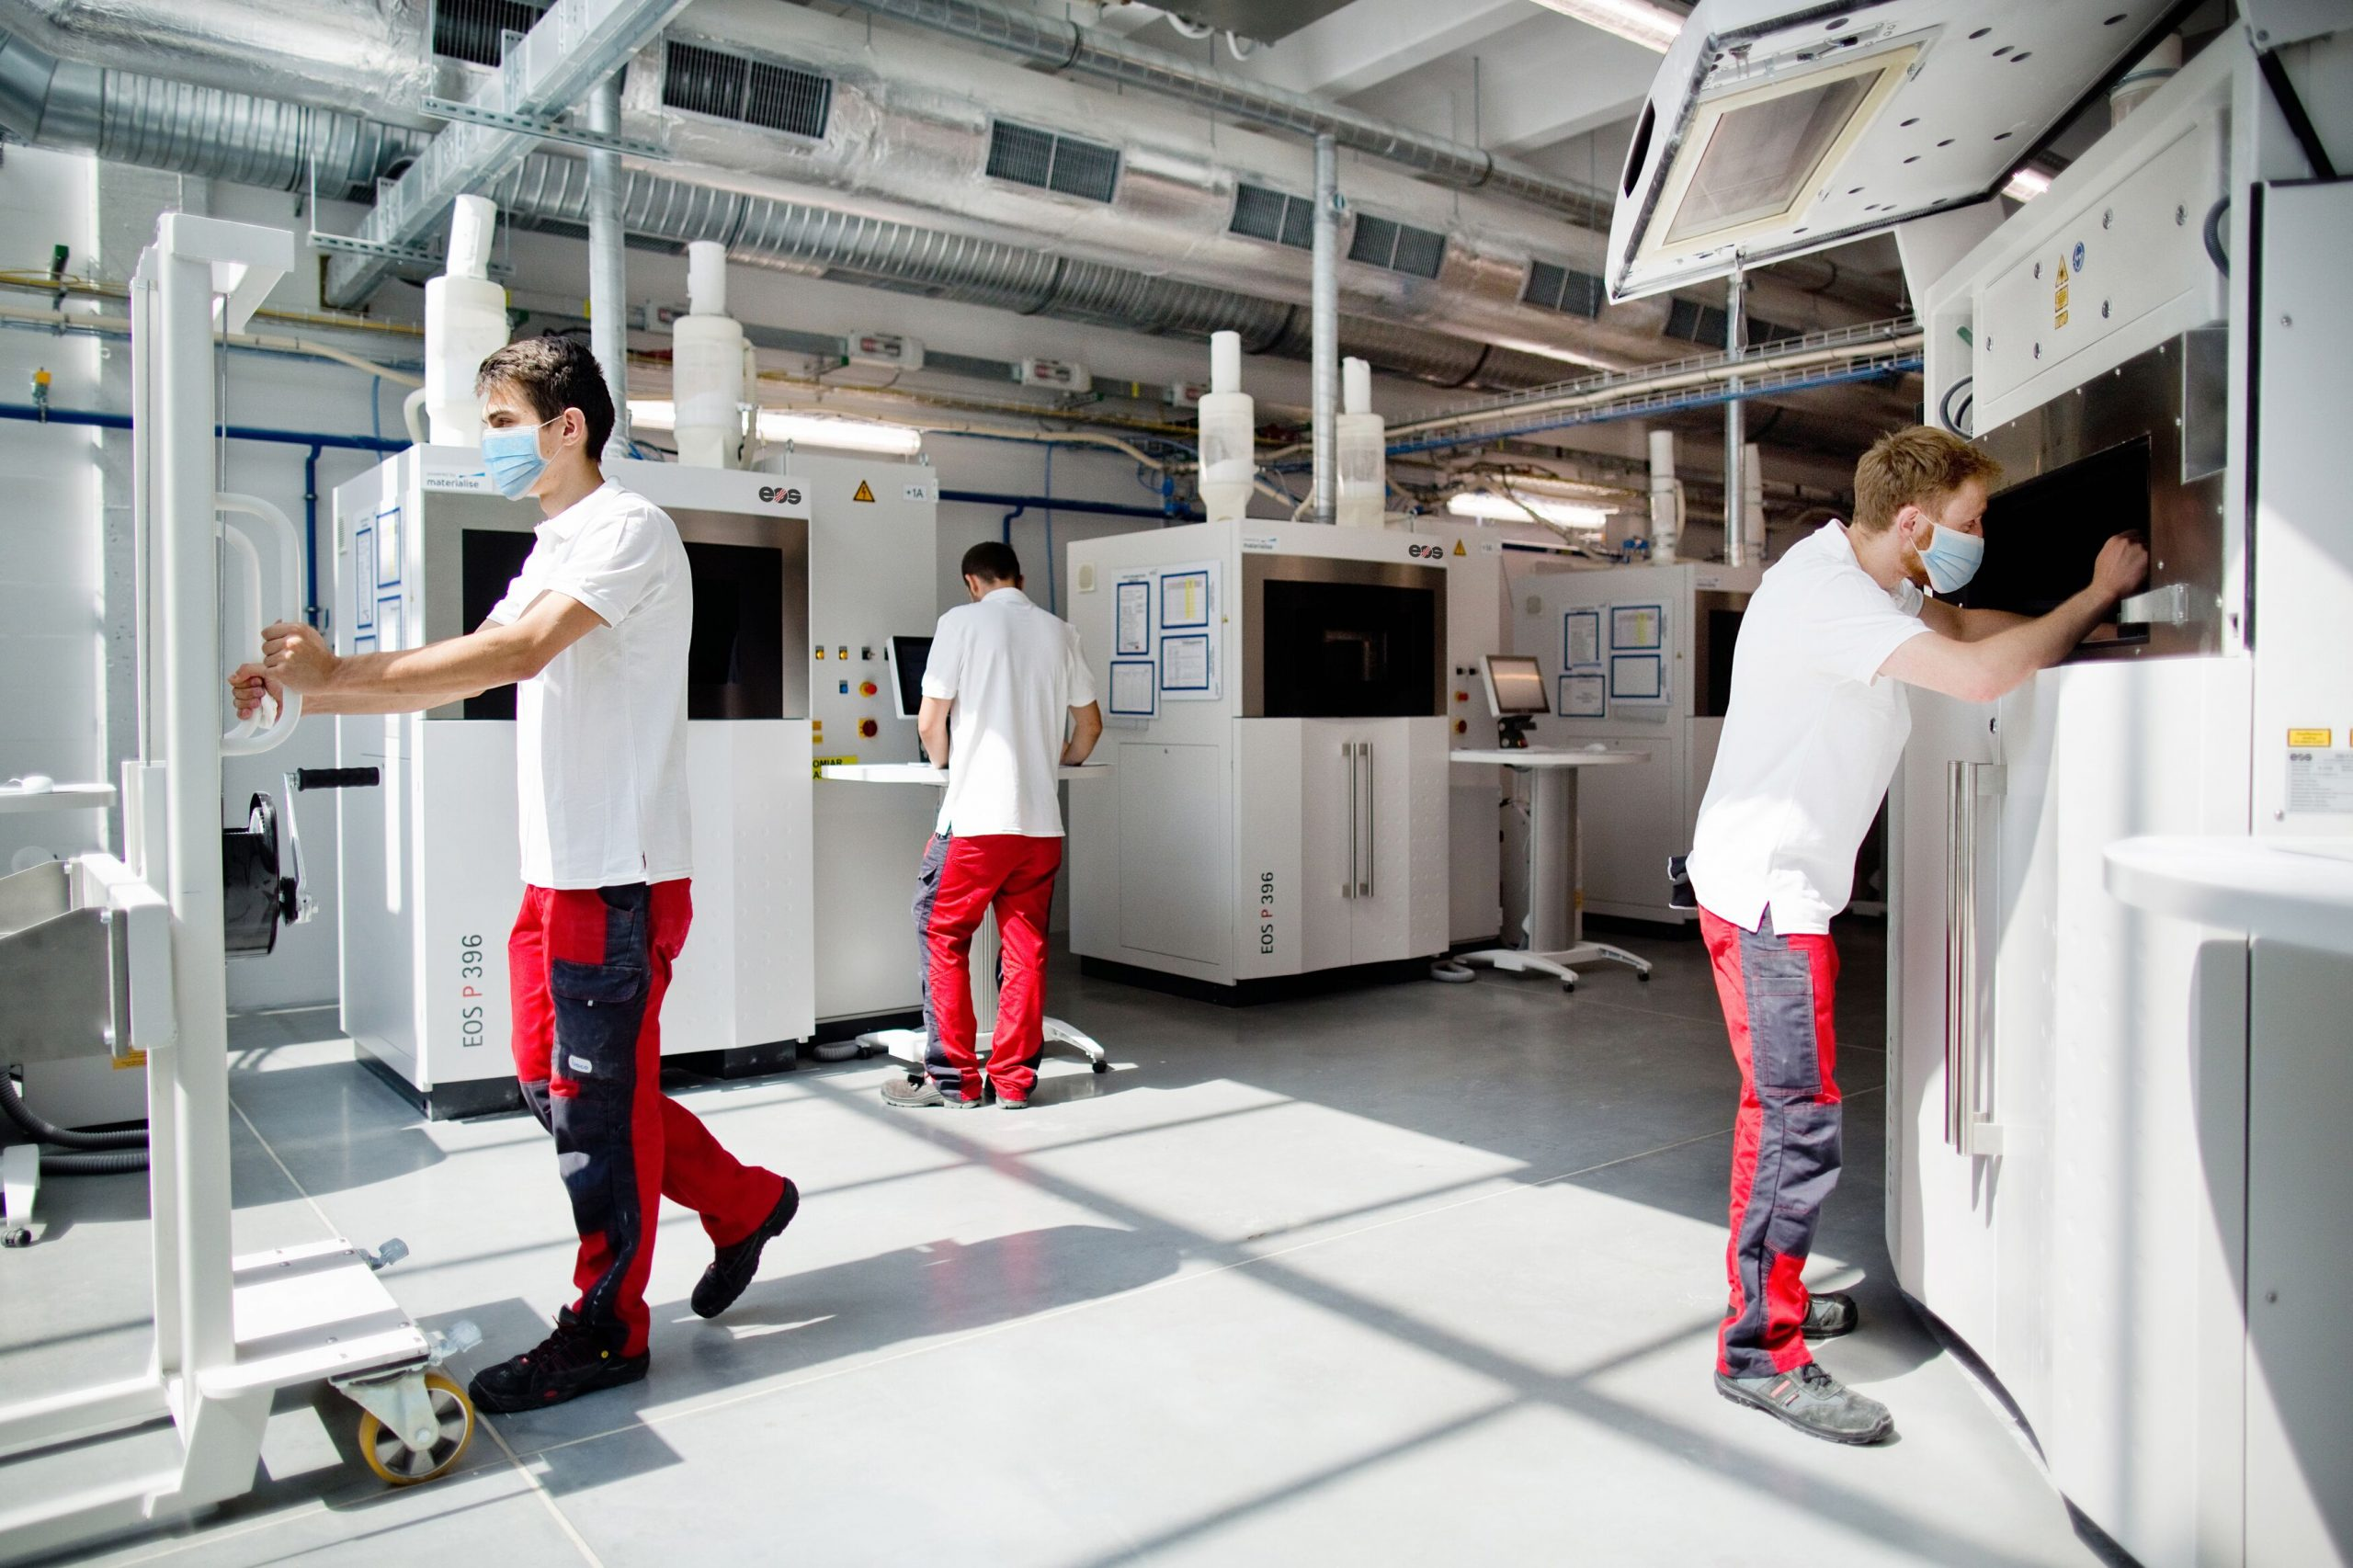 A Materialise 3D printing facility equipped with EOS systems. Photo via Materialise.